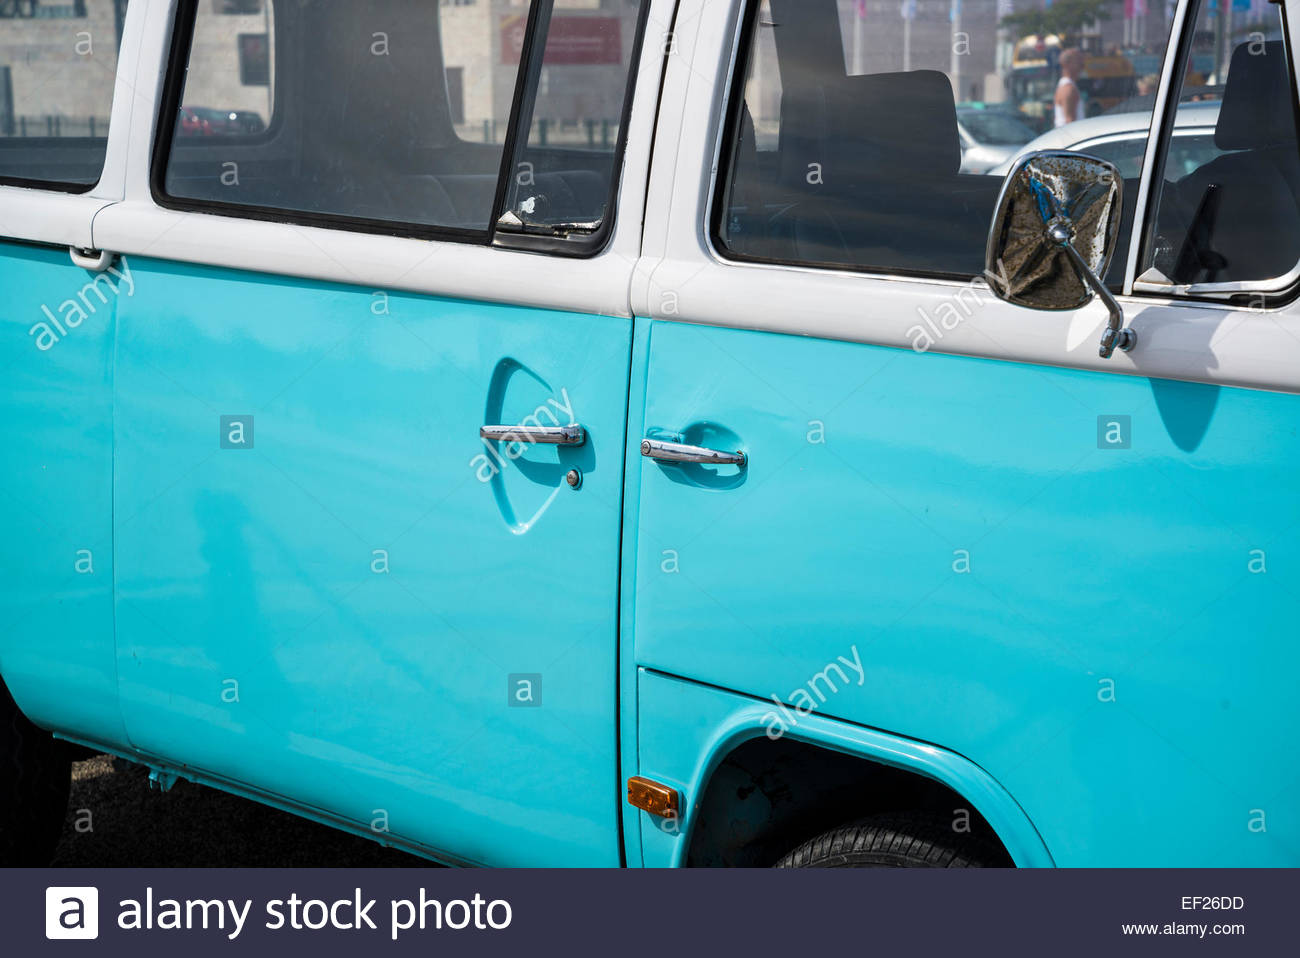 Turquoise campervan - Stock Image